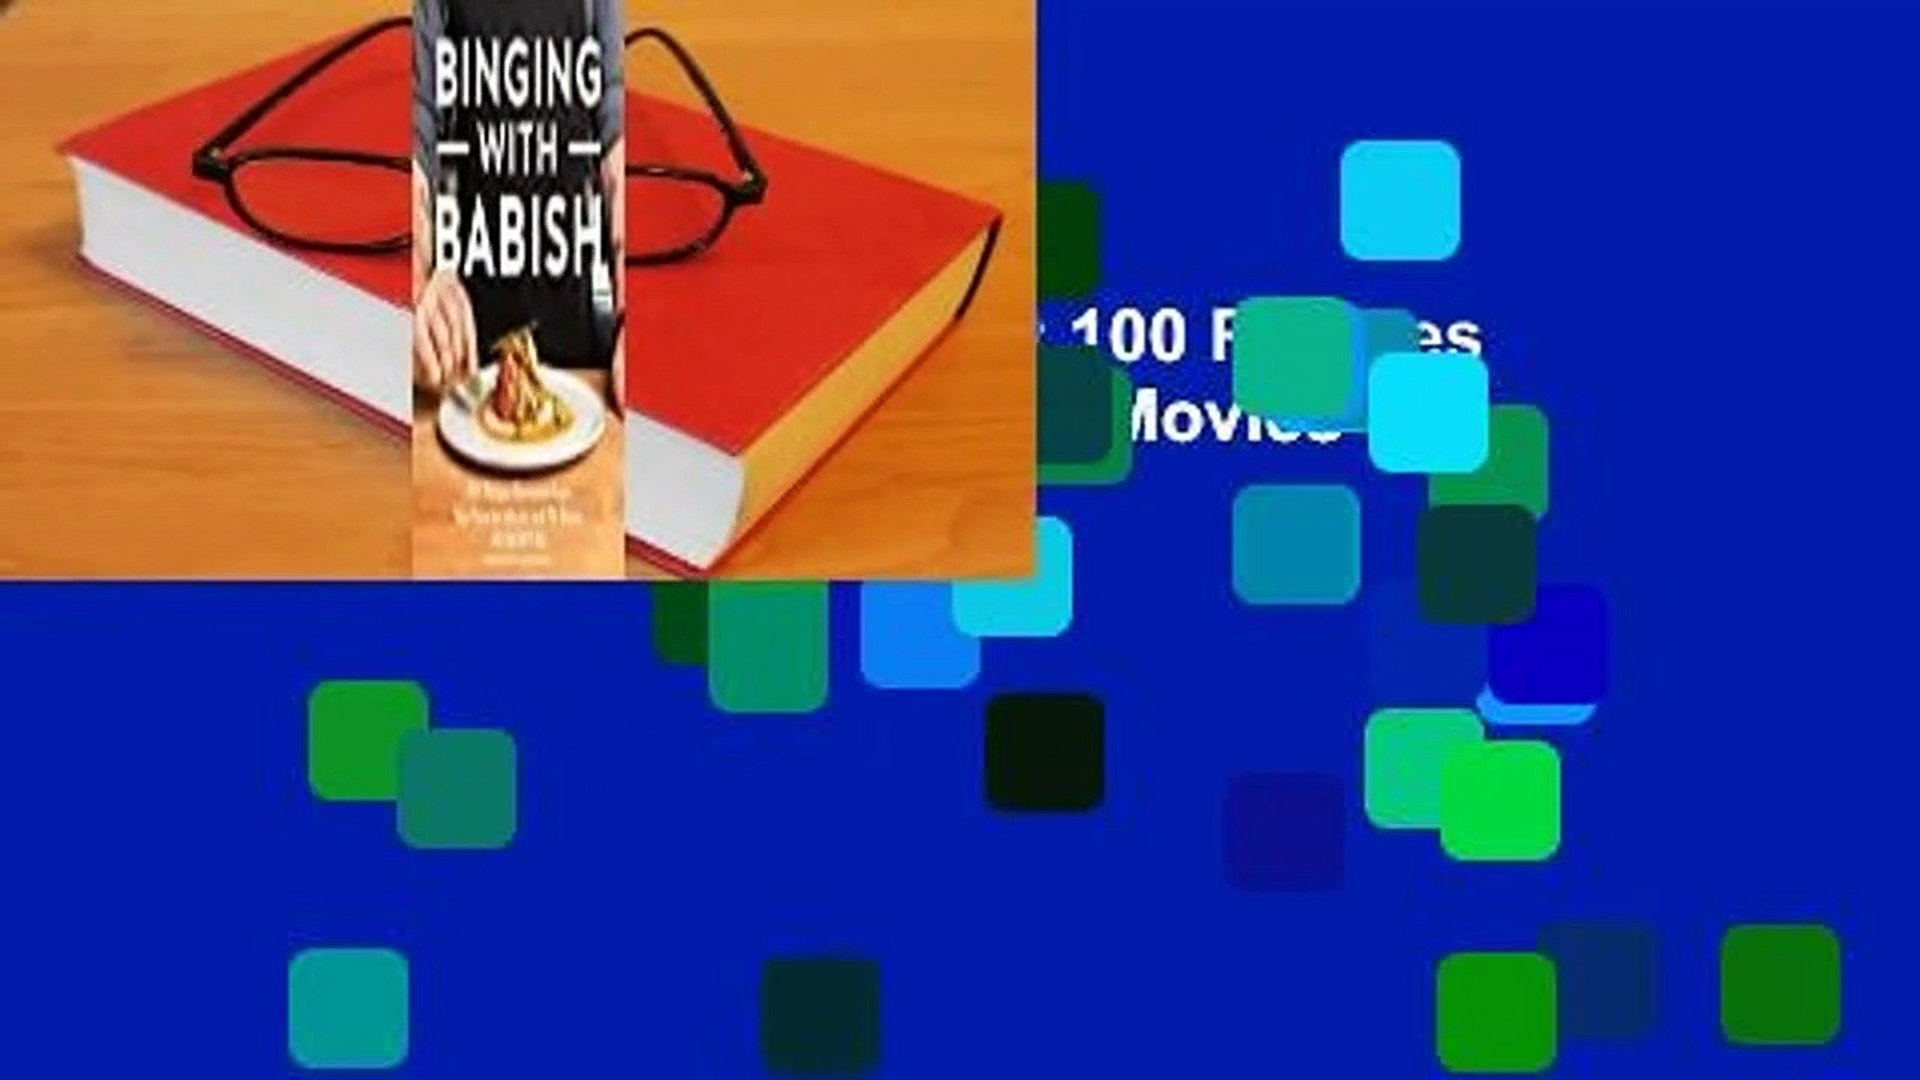 [Read] Binging with Babish: 100 Recipes Recreated from Your Favorite Movies and TV Shows Complete